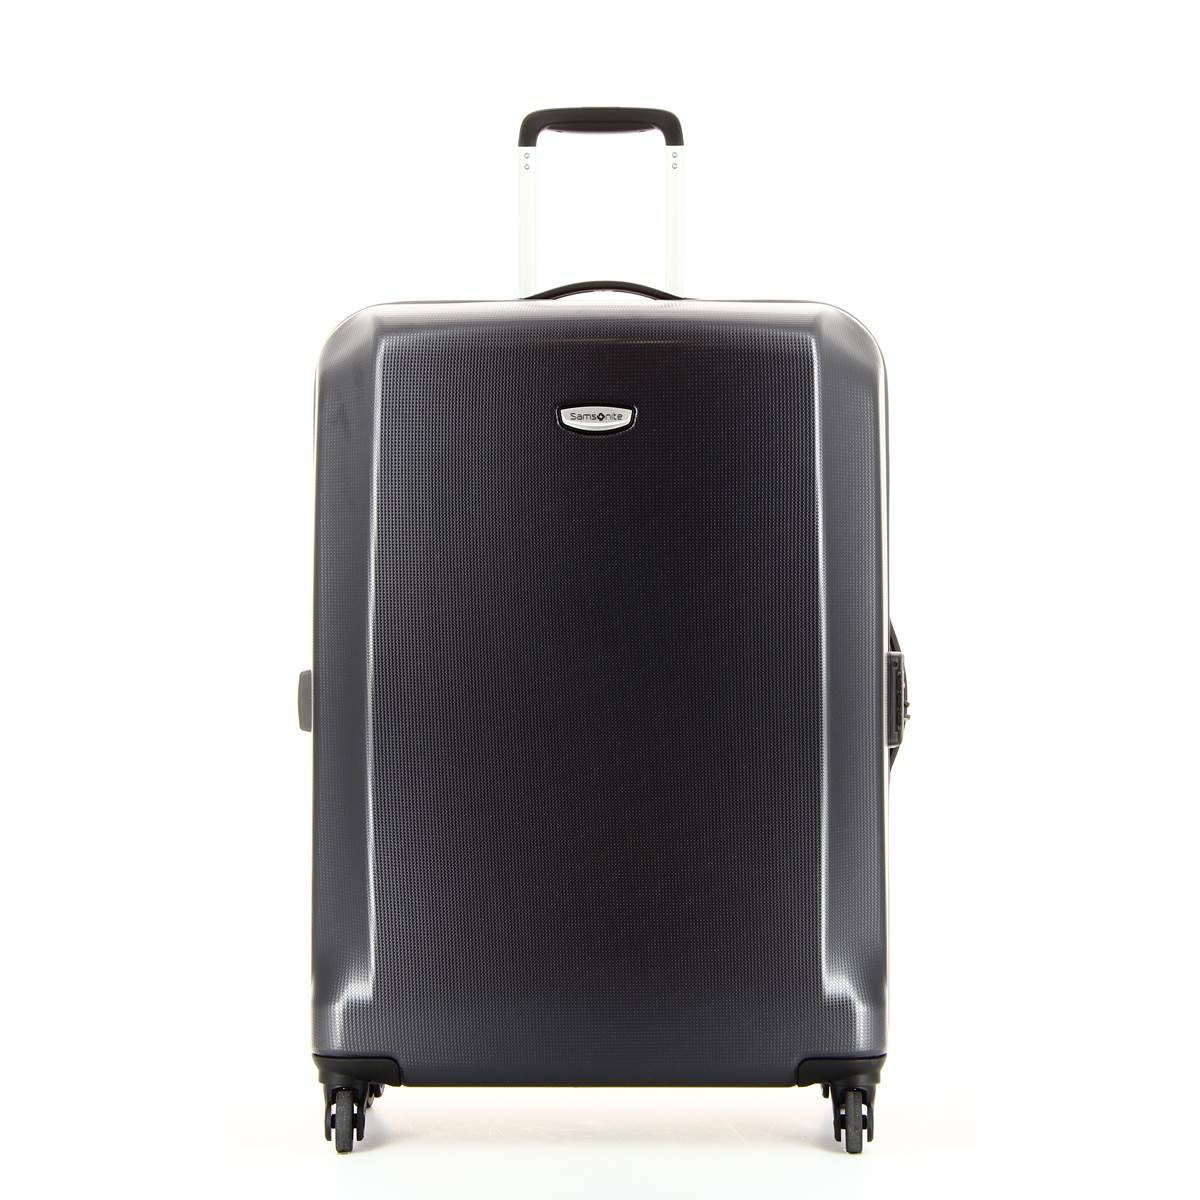 valise rigide grande taille 74 cm skydro samsonite. Black Bedroom Furniture Sets. Home Design Ideas